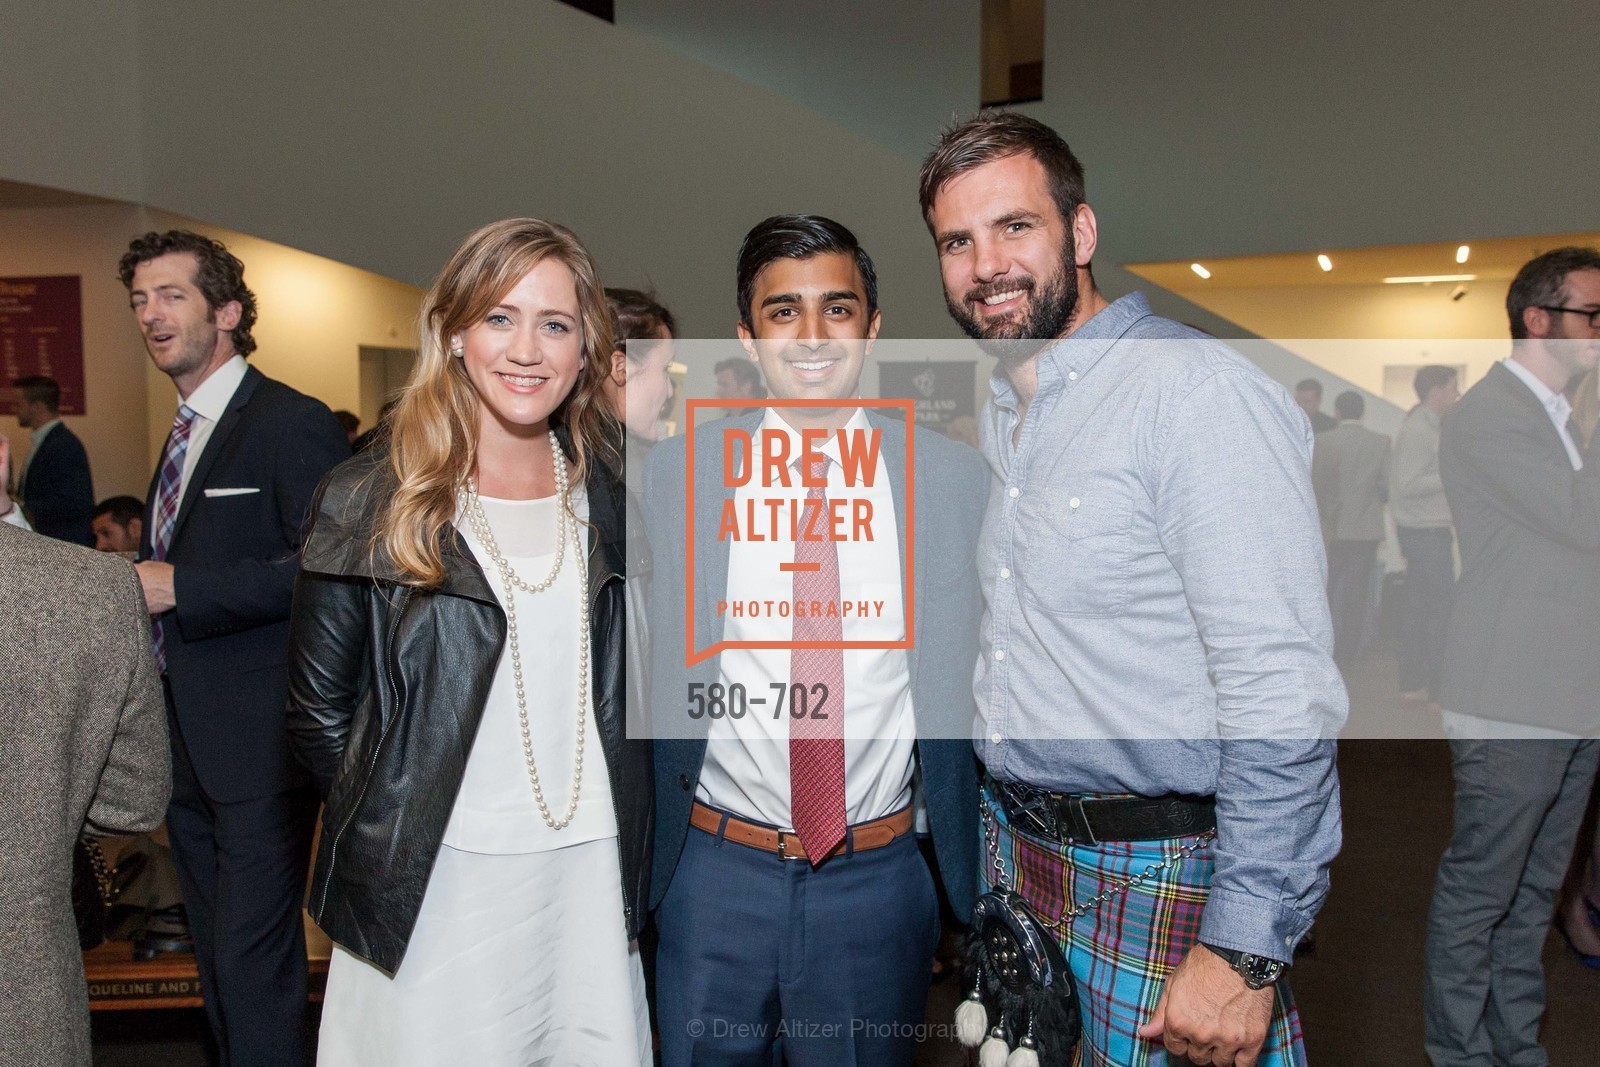 Caroline Langley, Rishi Dixit, William Lipp, ARTPOINT:  Masterpieces from the National Galleries of Scotland and Scotch Tastings, US, May 8th, 2015,Drew Altizer, Drew Altizer Photography, full-service agency, private events, San Francisco photographer, photographer california